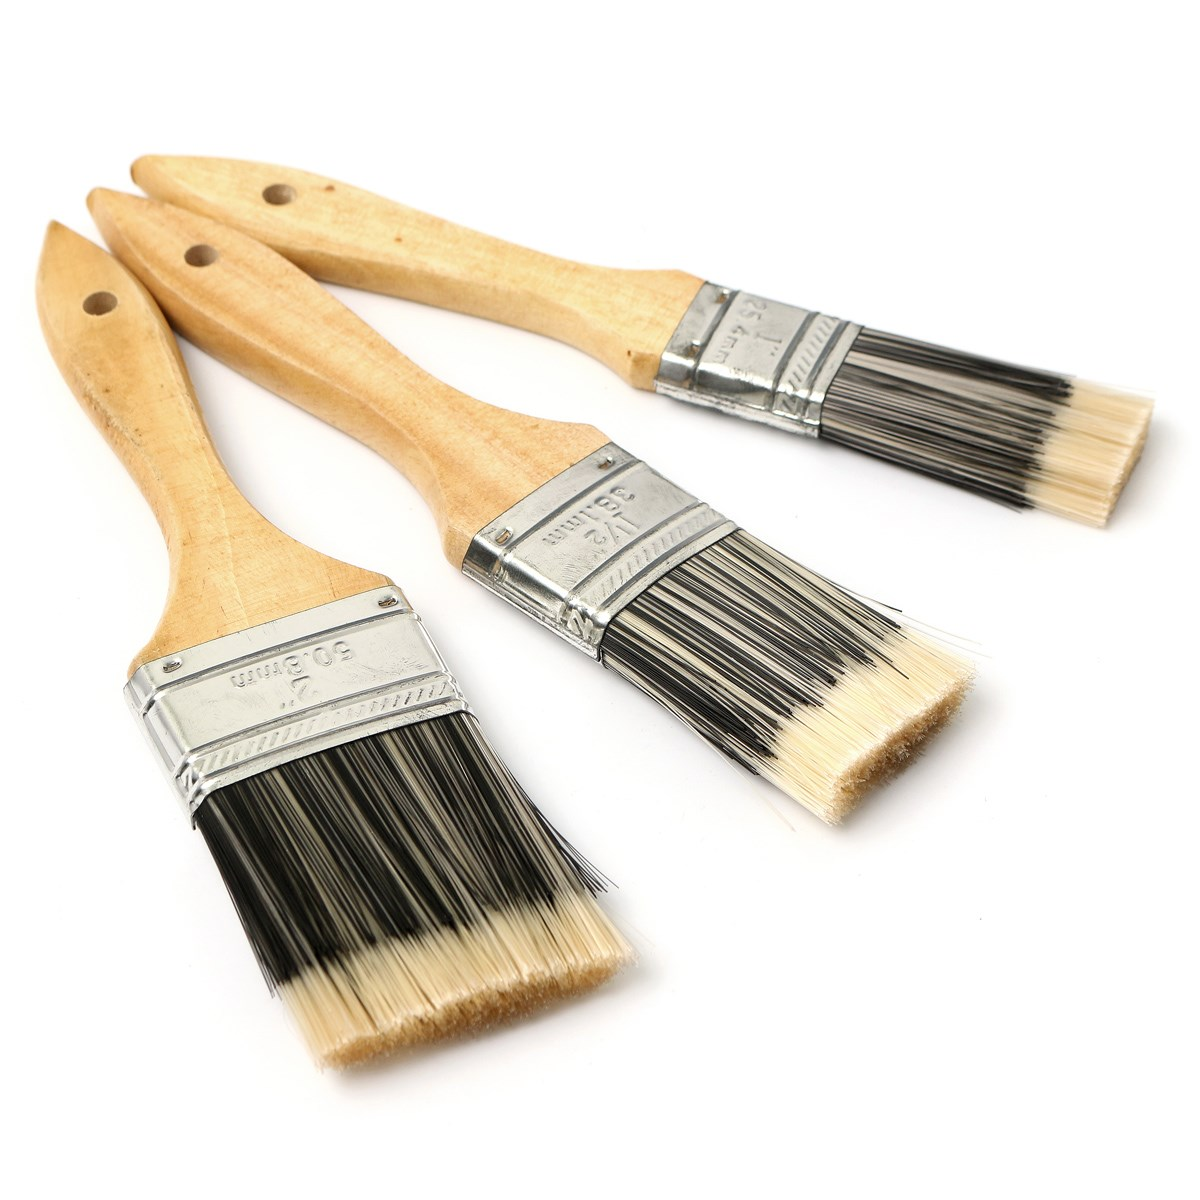 3Pcs/set Best Promotion Flat Painting Brushes Set Wooden Handle For Artists Painting Oil Acrylic Varnishing School Home Supplies(China (Mainland))